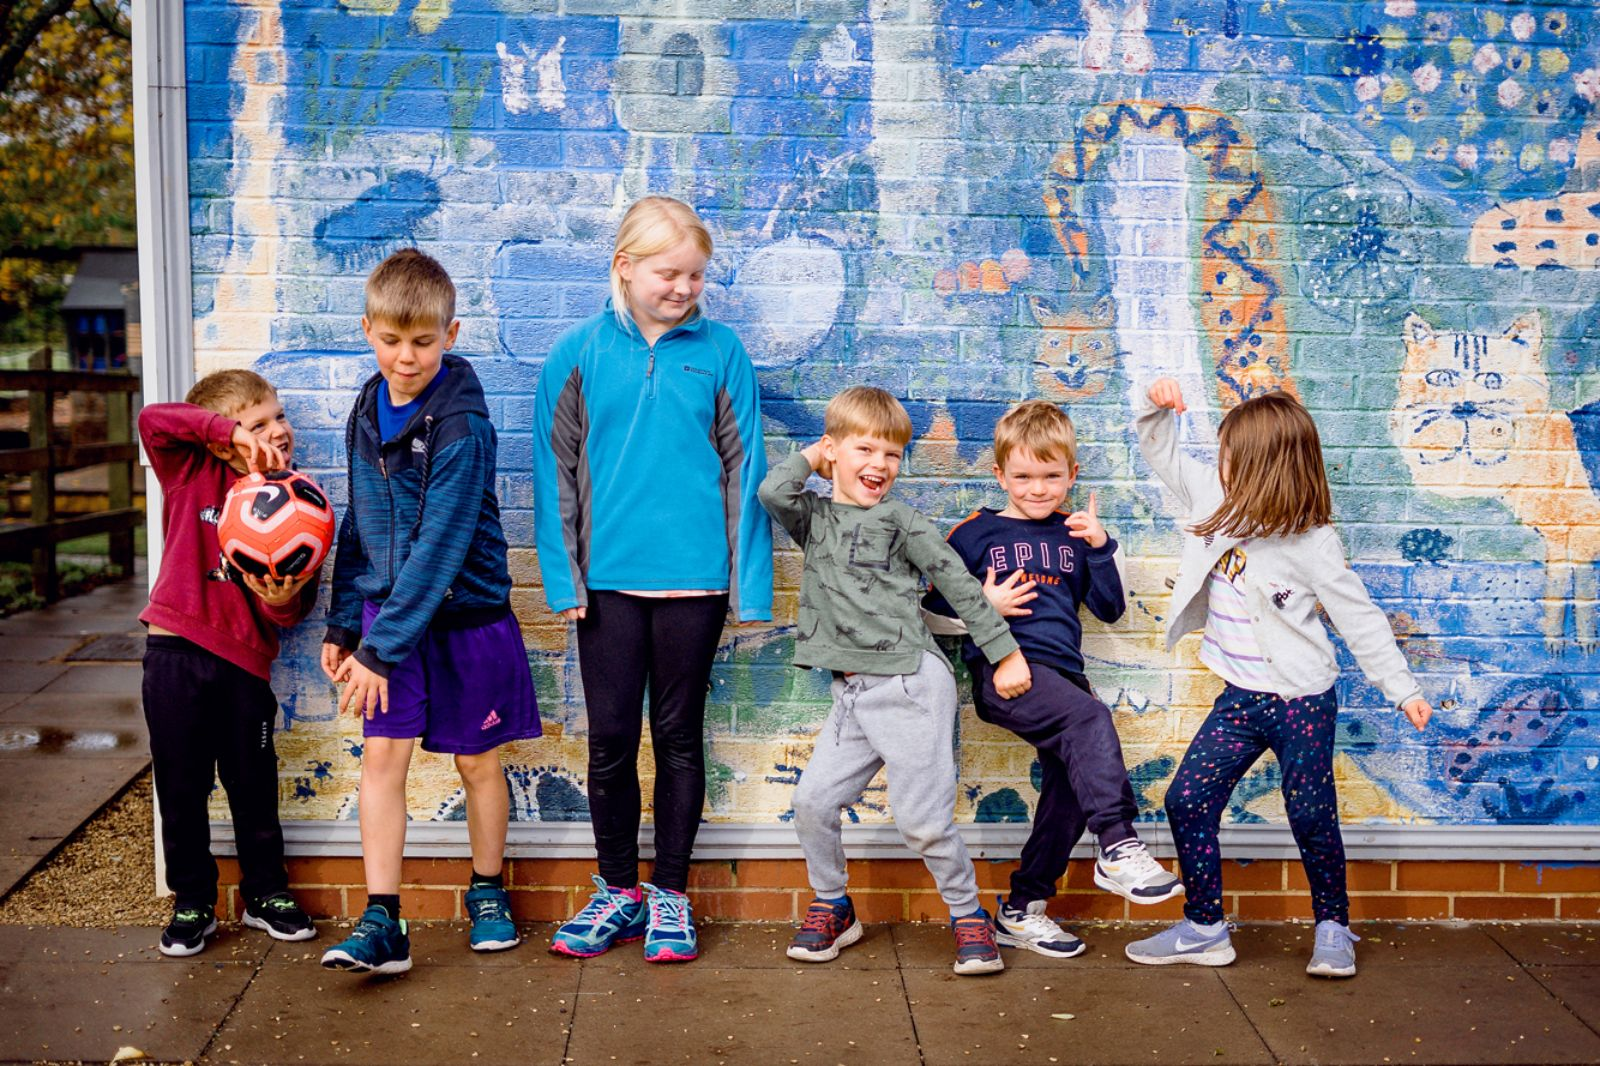 children smiling in front of a wall